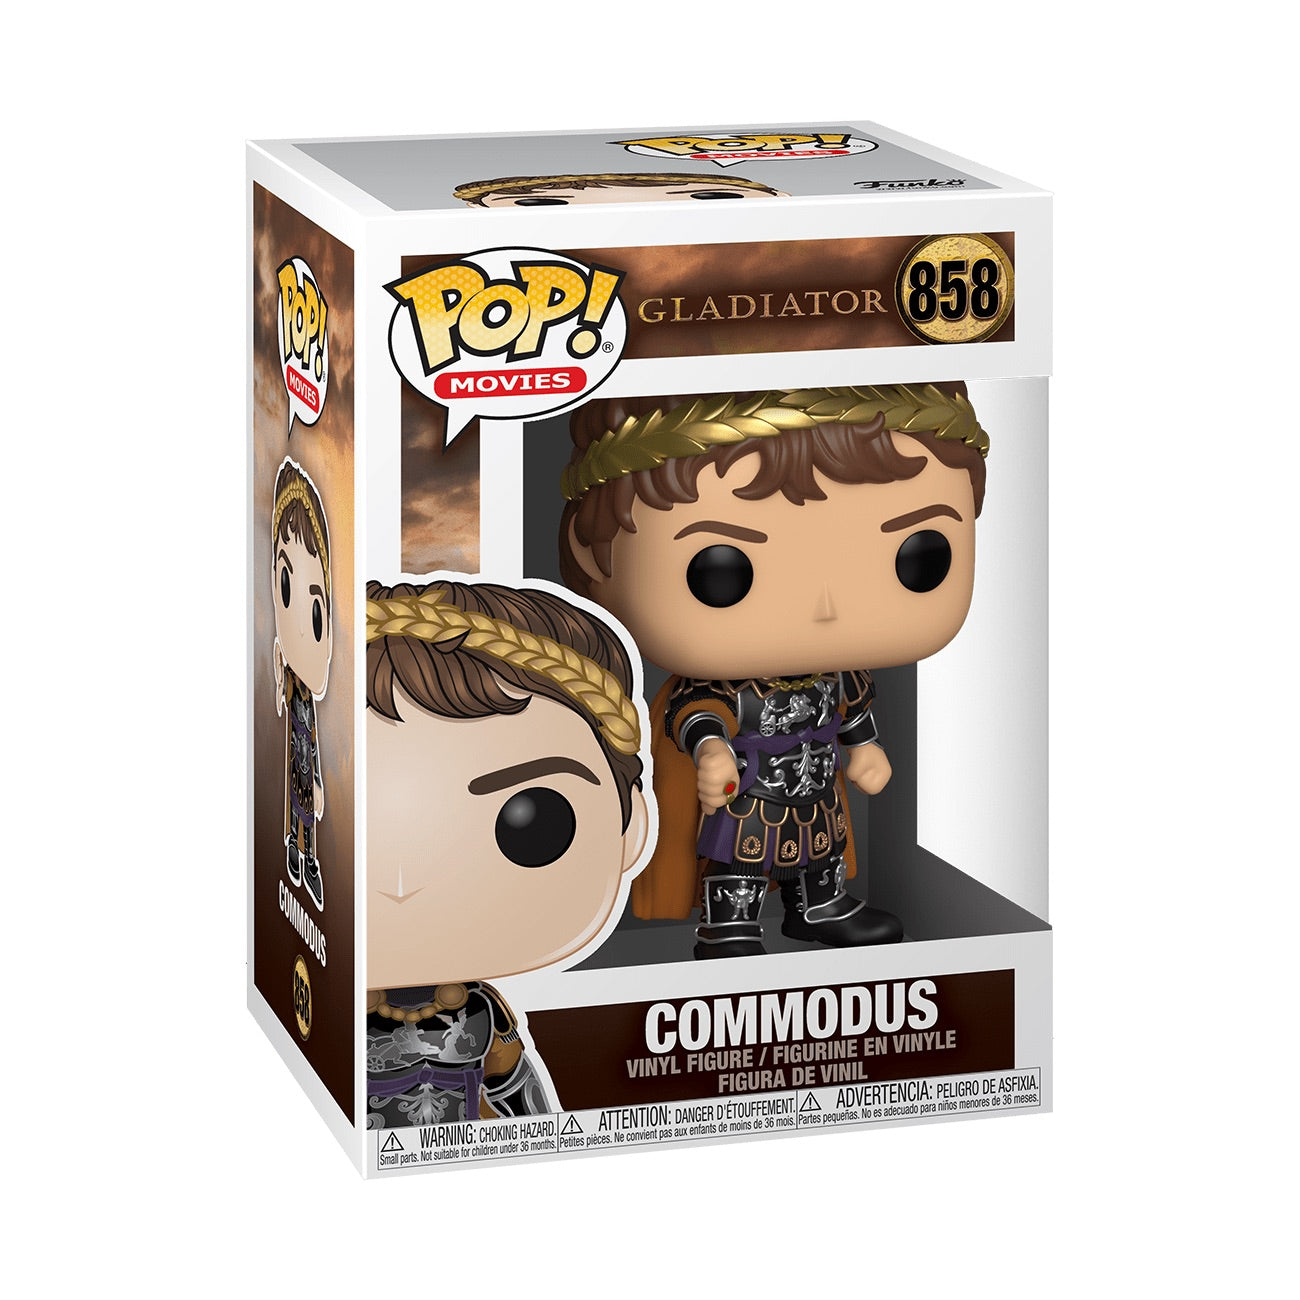 Gladiator Commodus